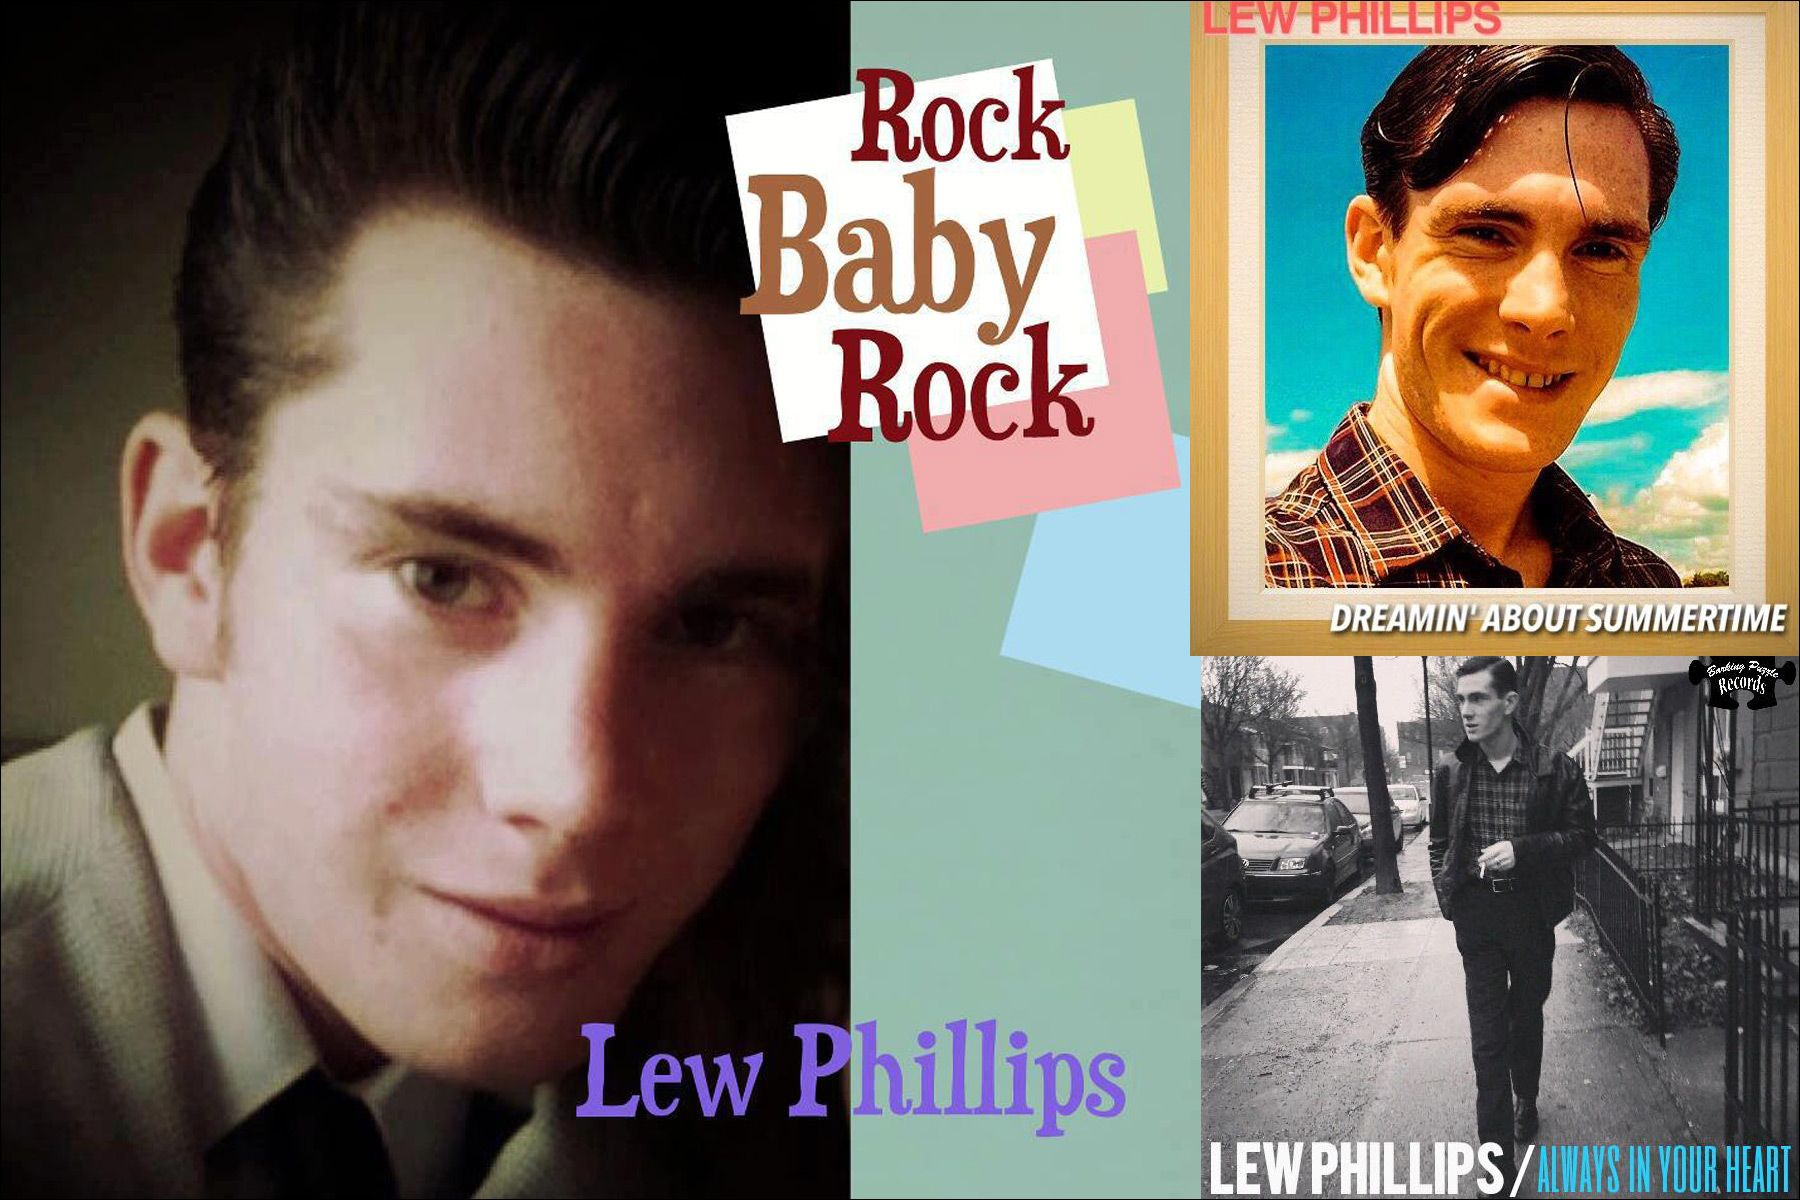 Tearsheets of Canadian musician Lew Phillips. Ponyboy magazine NY.